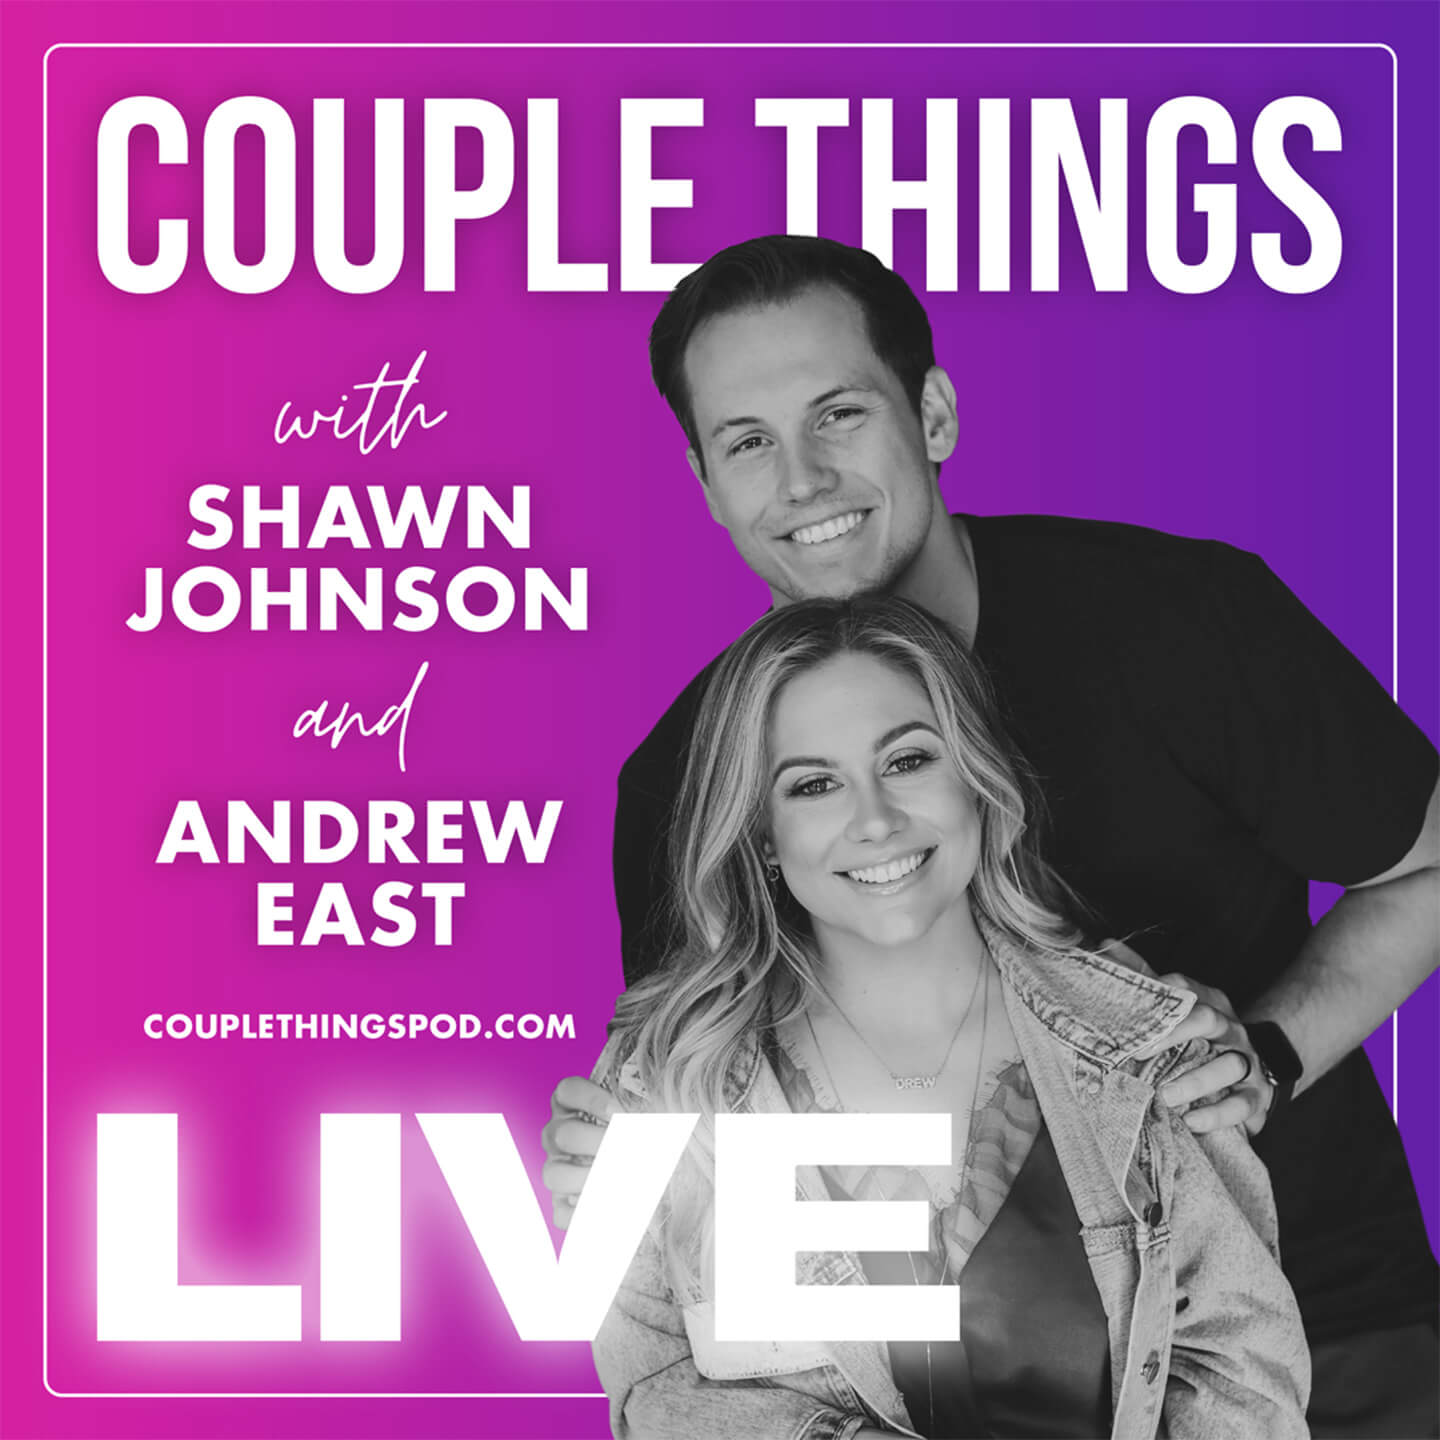 Couple Things Podcast with Shawn Johnson and Andrew East